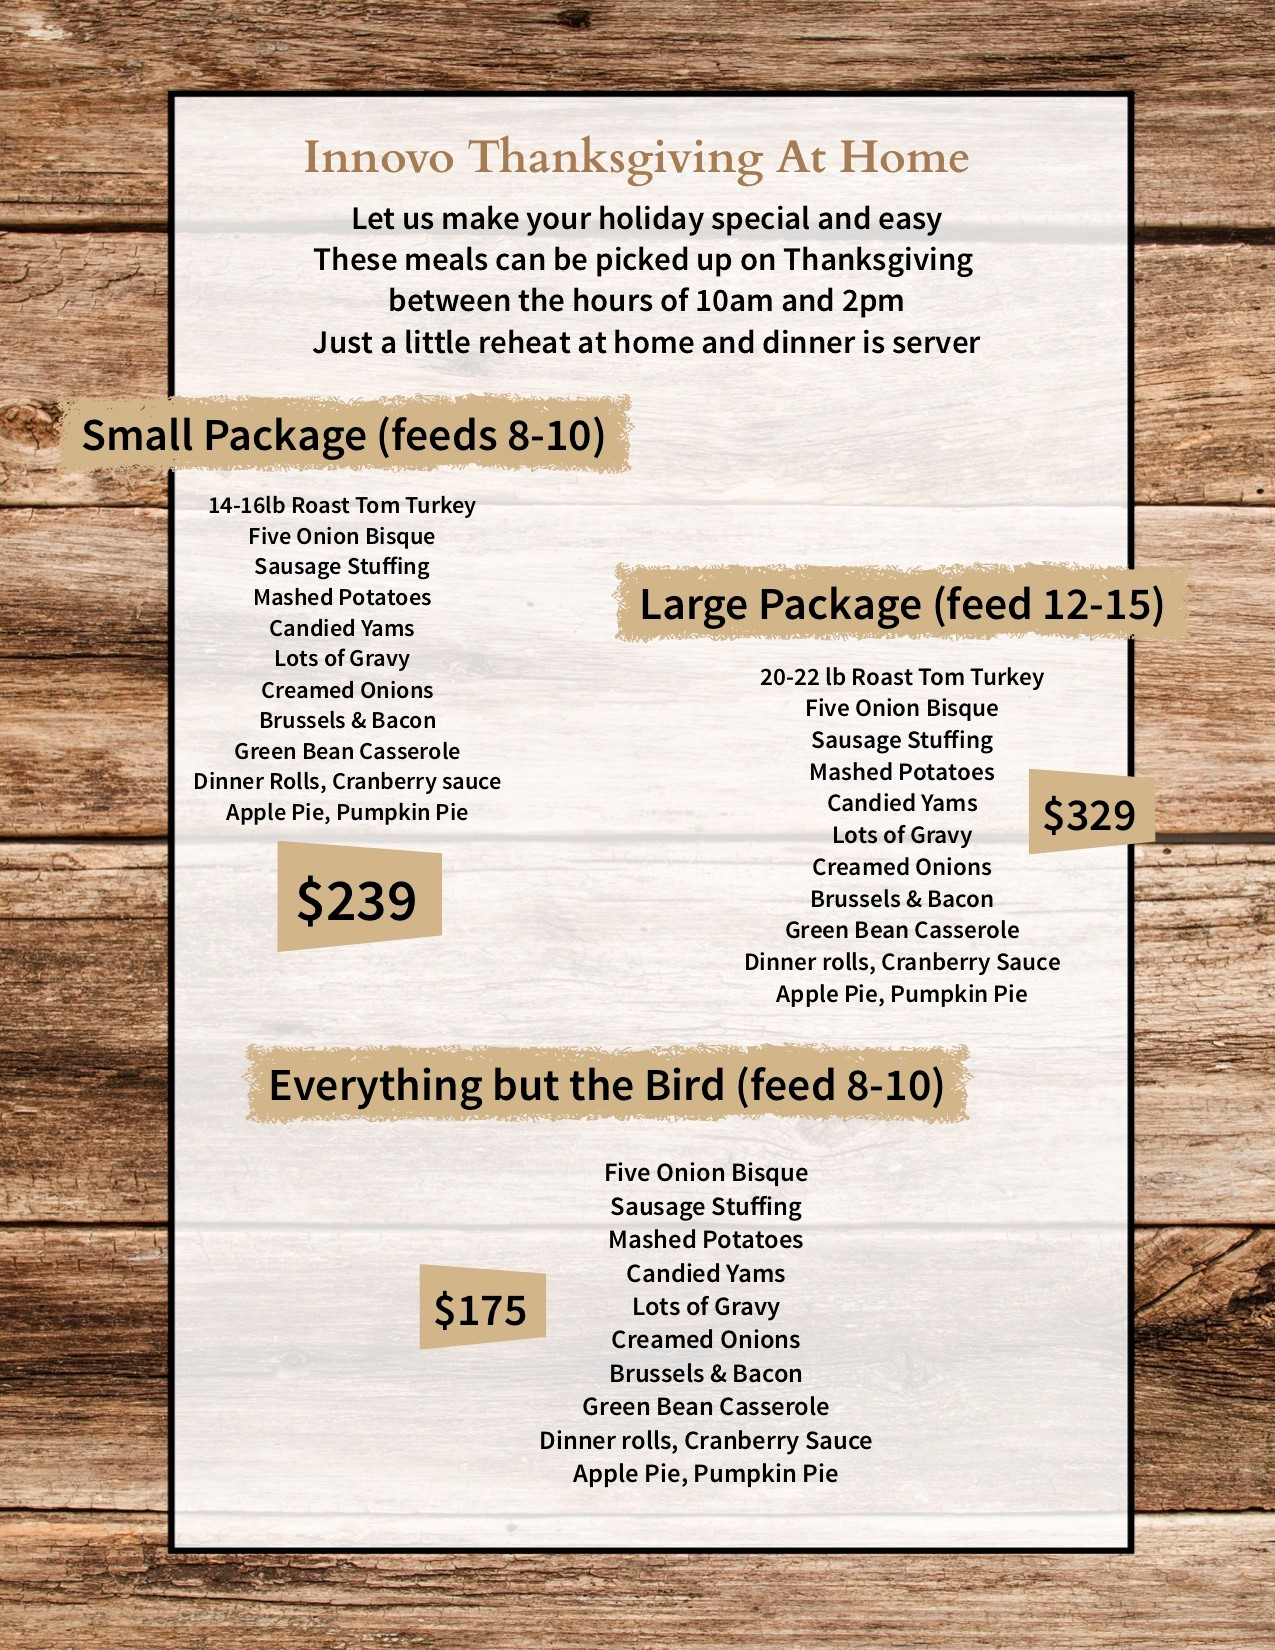 Innovo Thanksgiving at home. Let us make your holiday special and easy. These meals can be picked up on Thanksgiving between the hours of 10 a.m. and 2 p.m. Just a little reheat at home and dinner is served. Small Package (feeds 8-10): 12-16Ib Roast tom turkey, five onion bisque, sausage stuffing, mashed potatoes, candied yams, lots of gravy, creamed onions, brussels and bacon, green bean casserole, dinner rolls, cranberry sauce, apple pie, pumpkin pie = $239. Large package (feed 12-15): 20-22 Ib roast tom turkey, five onion bisque, sausage stuffing, mashed potatoes, candied yams, lots of gravy, creamed onions, brussels and bacon, green bean casserole, dinner rolls, cranberry sauce, apple pie, pumpkin pie = $329. Everything but the bird (feed 8-10): five onion bisque, sausage stuffing, mashed potatoes, candied yams, lots of gravy, creamed onions, brussels and bacon, green bean casserole, dinner rolls, cranberry sauce, apple pie, pumpkin pie= $175.